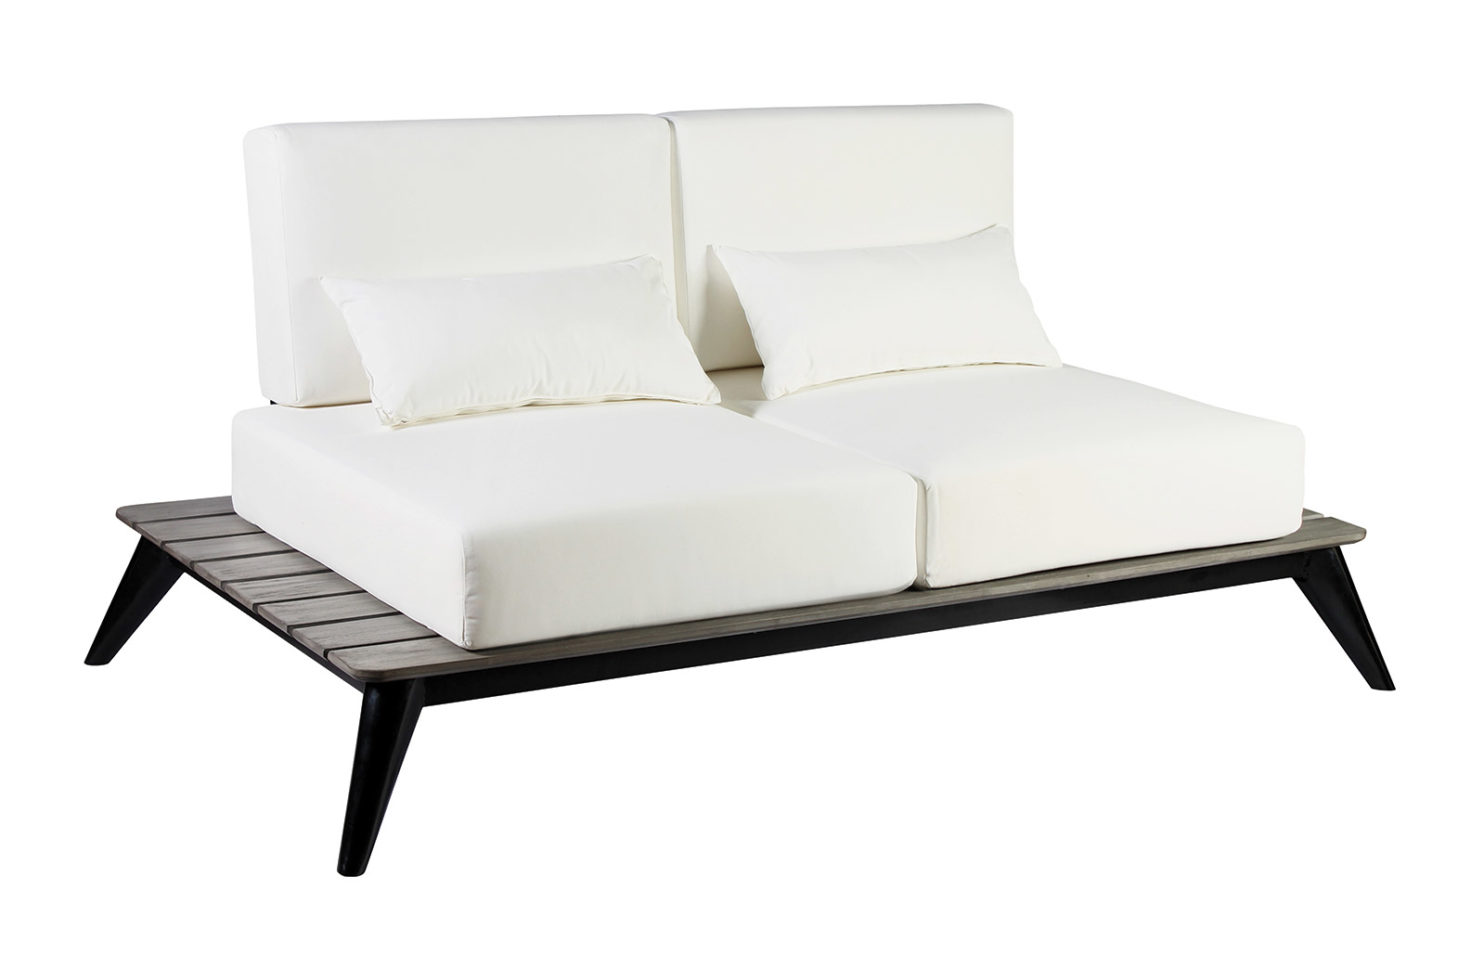 Kakaban Loveseat 3-4 Centered 270FT002P2BW